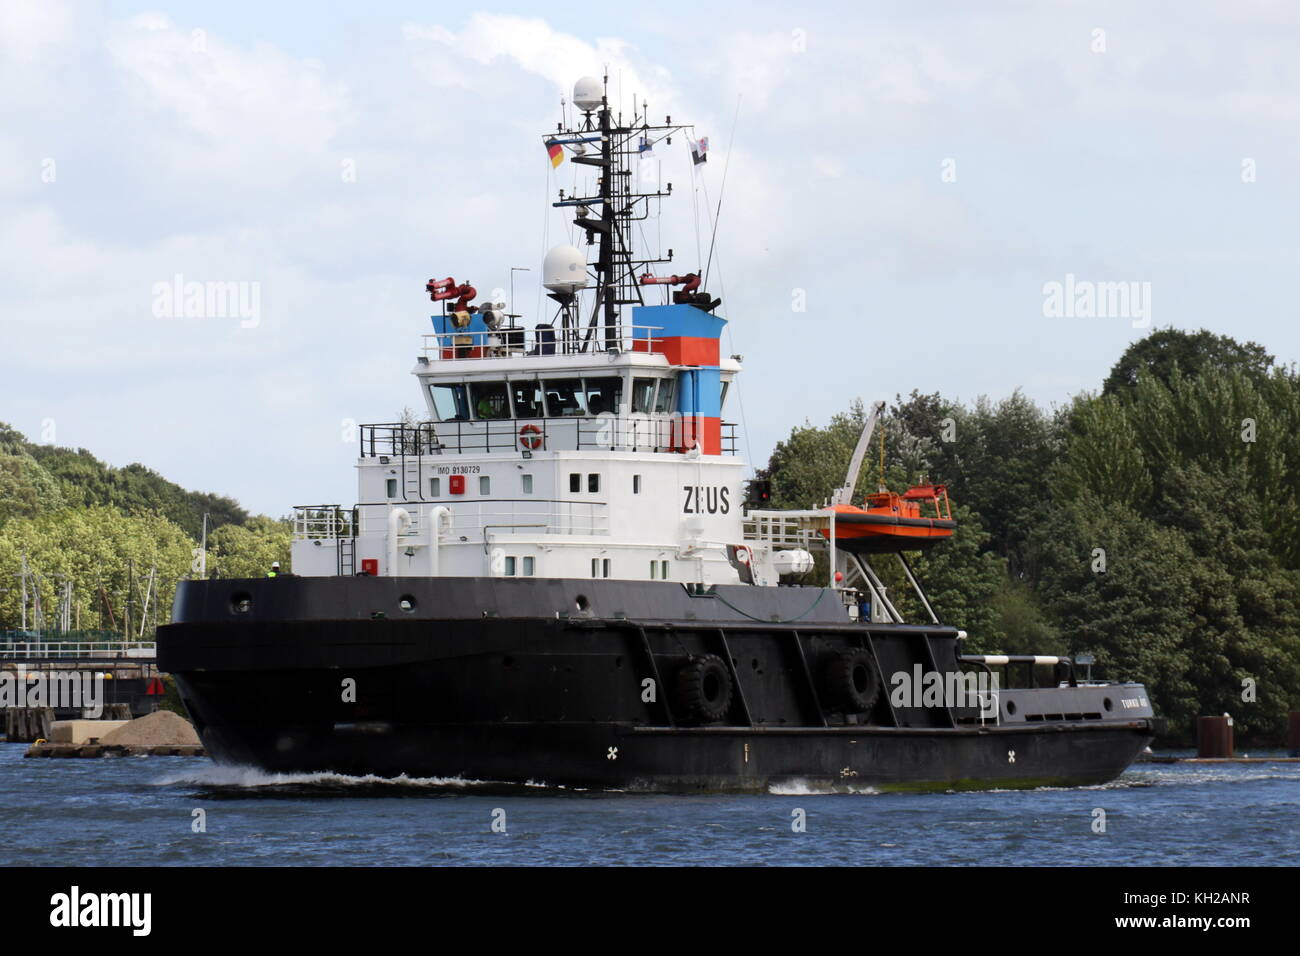 The offshore hauler Zeus enters Kiel Canal on August 8, 2016 at Kiel Holtenau. - Stock Image